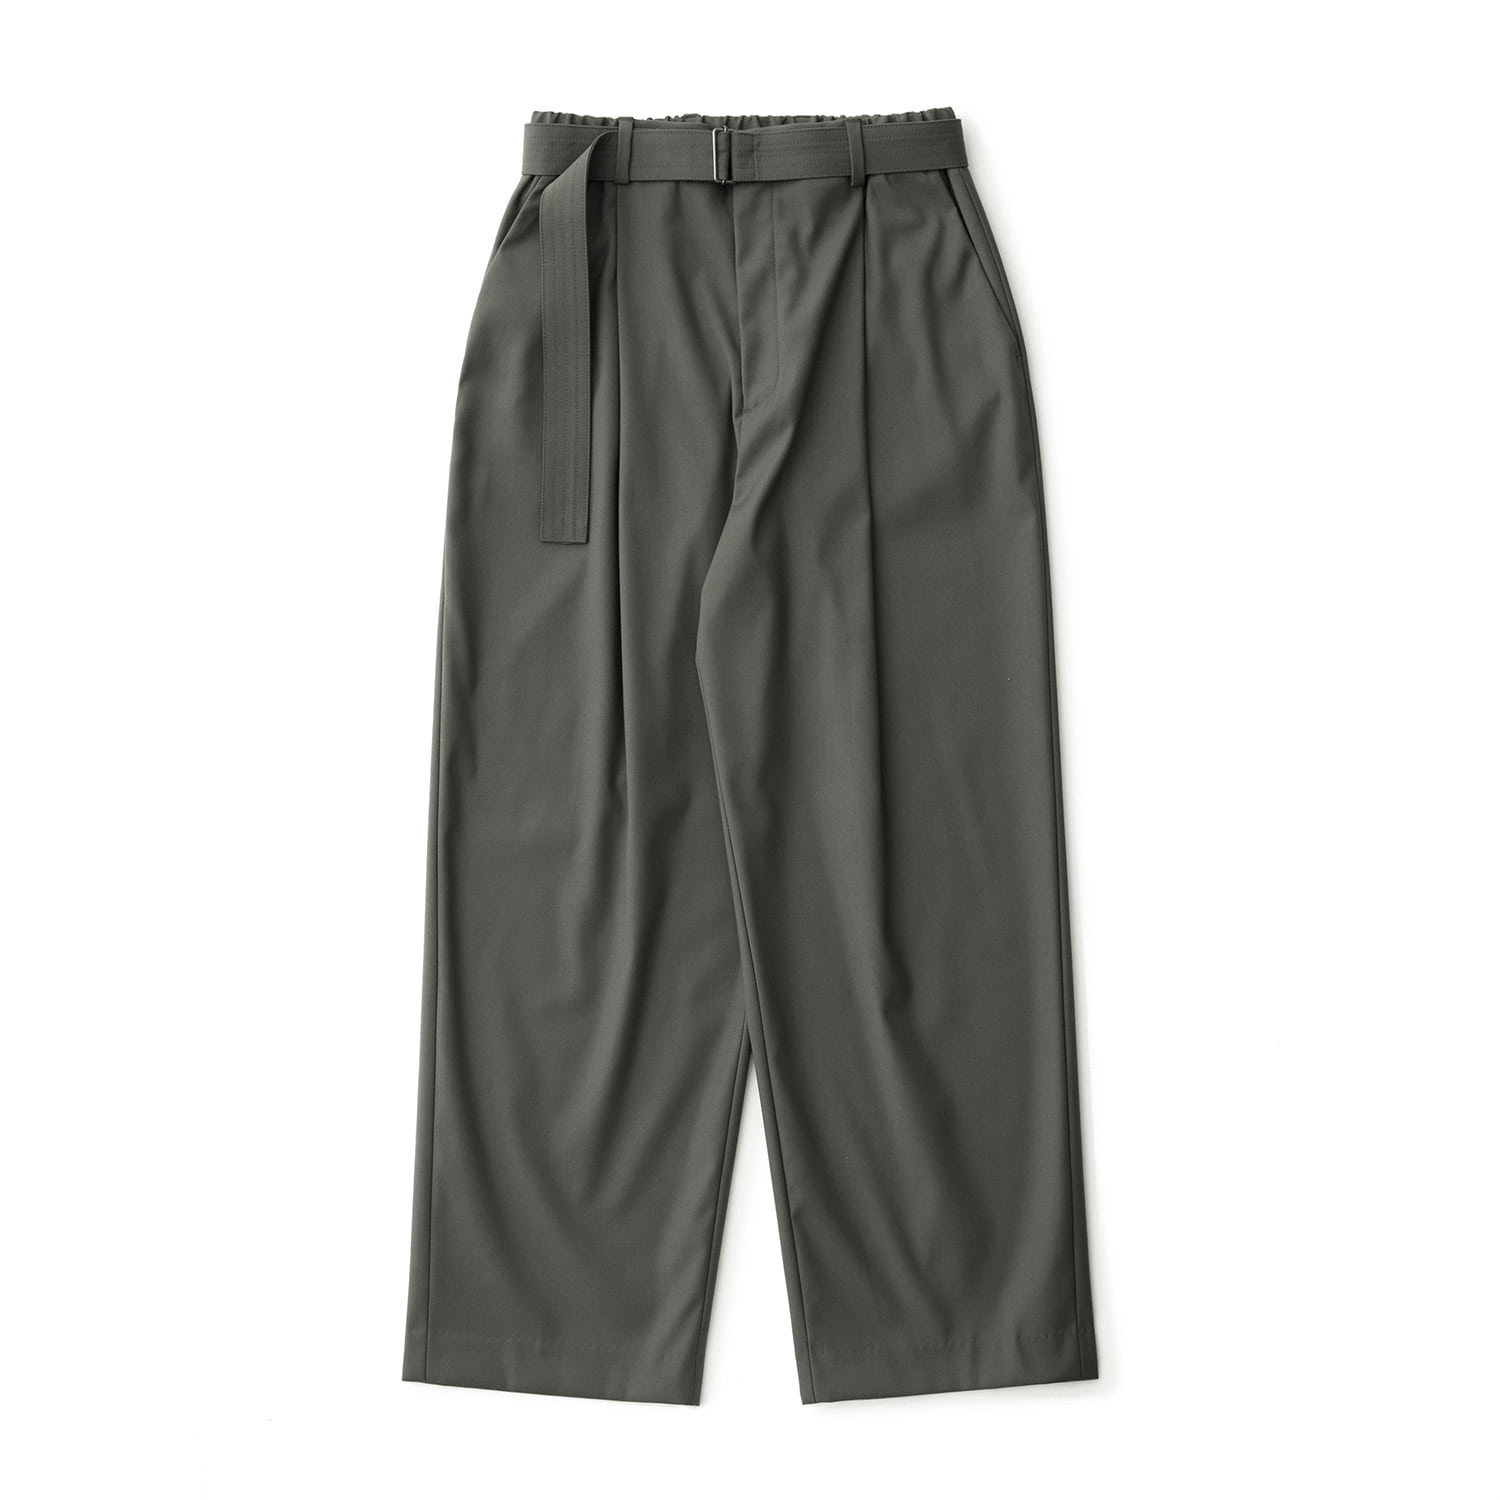 [재입고] 21SS Calm Banded Pants (Olive Gray)